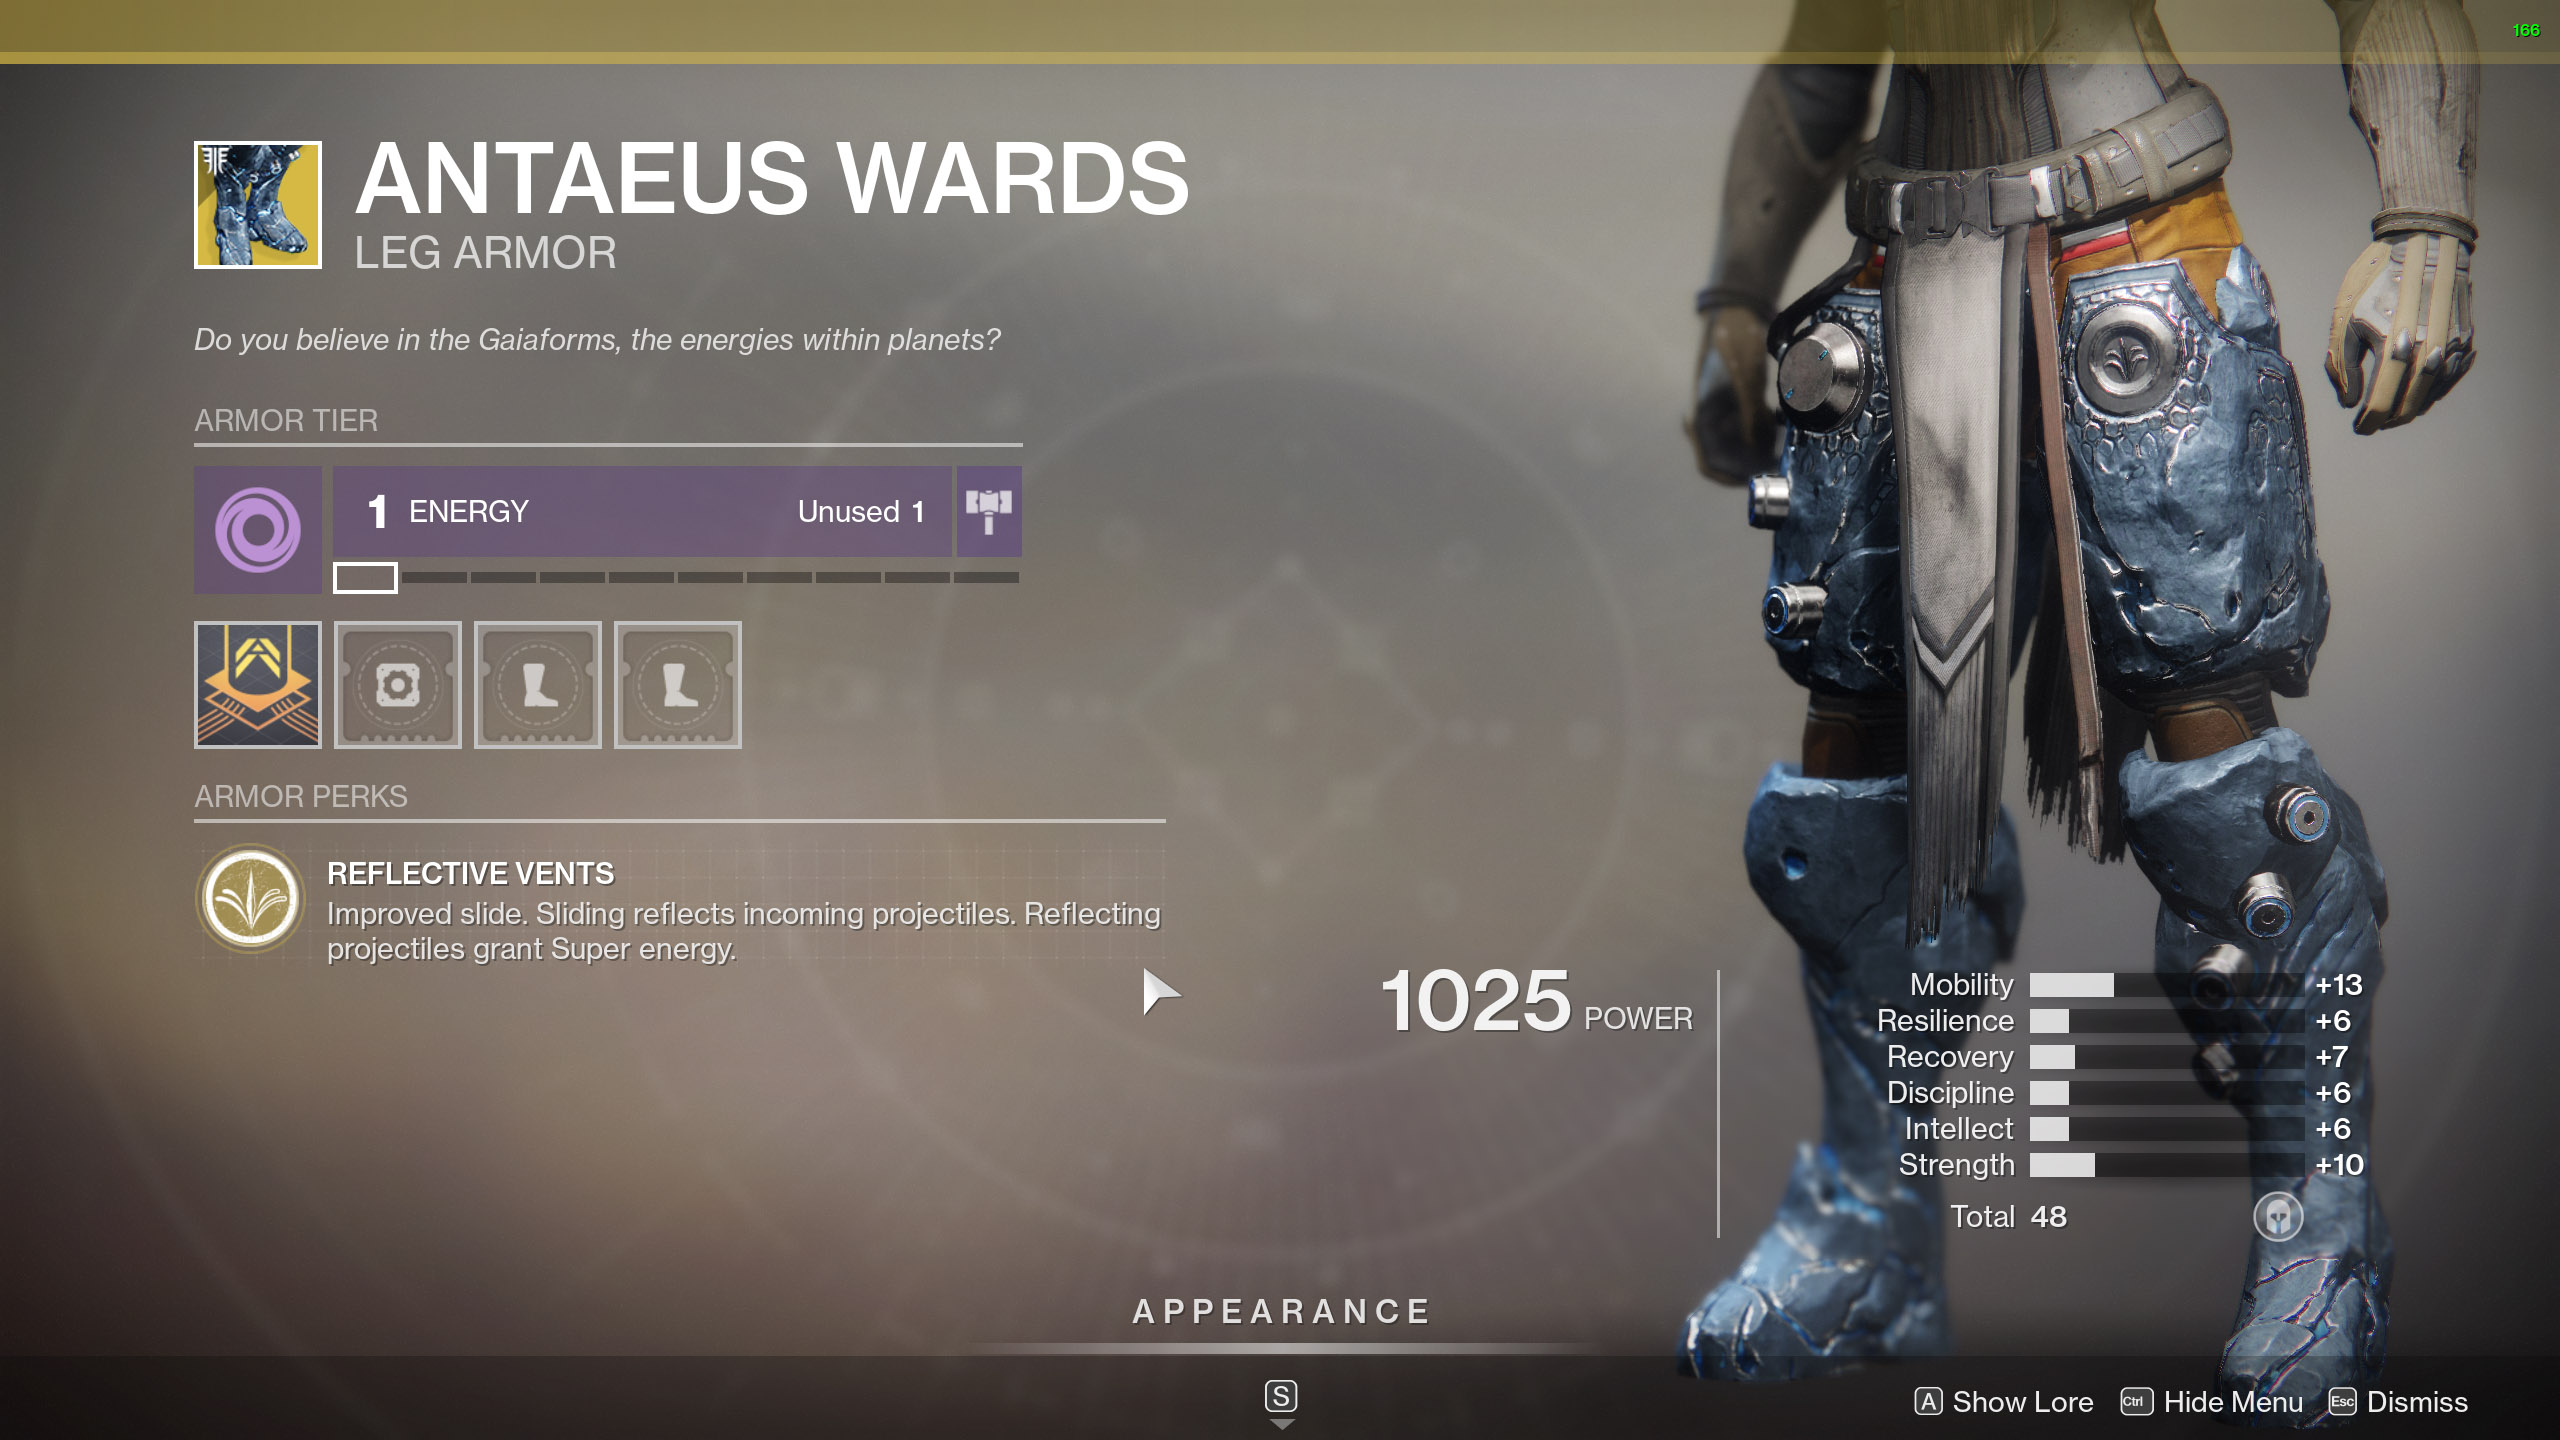 Destiny 2 Exotic Titan Armor Antaeus Wards